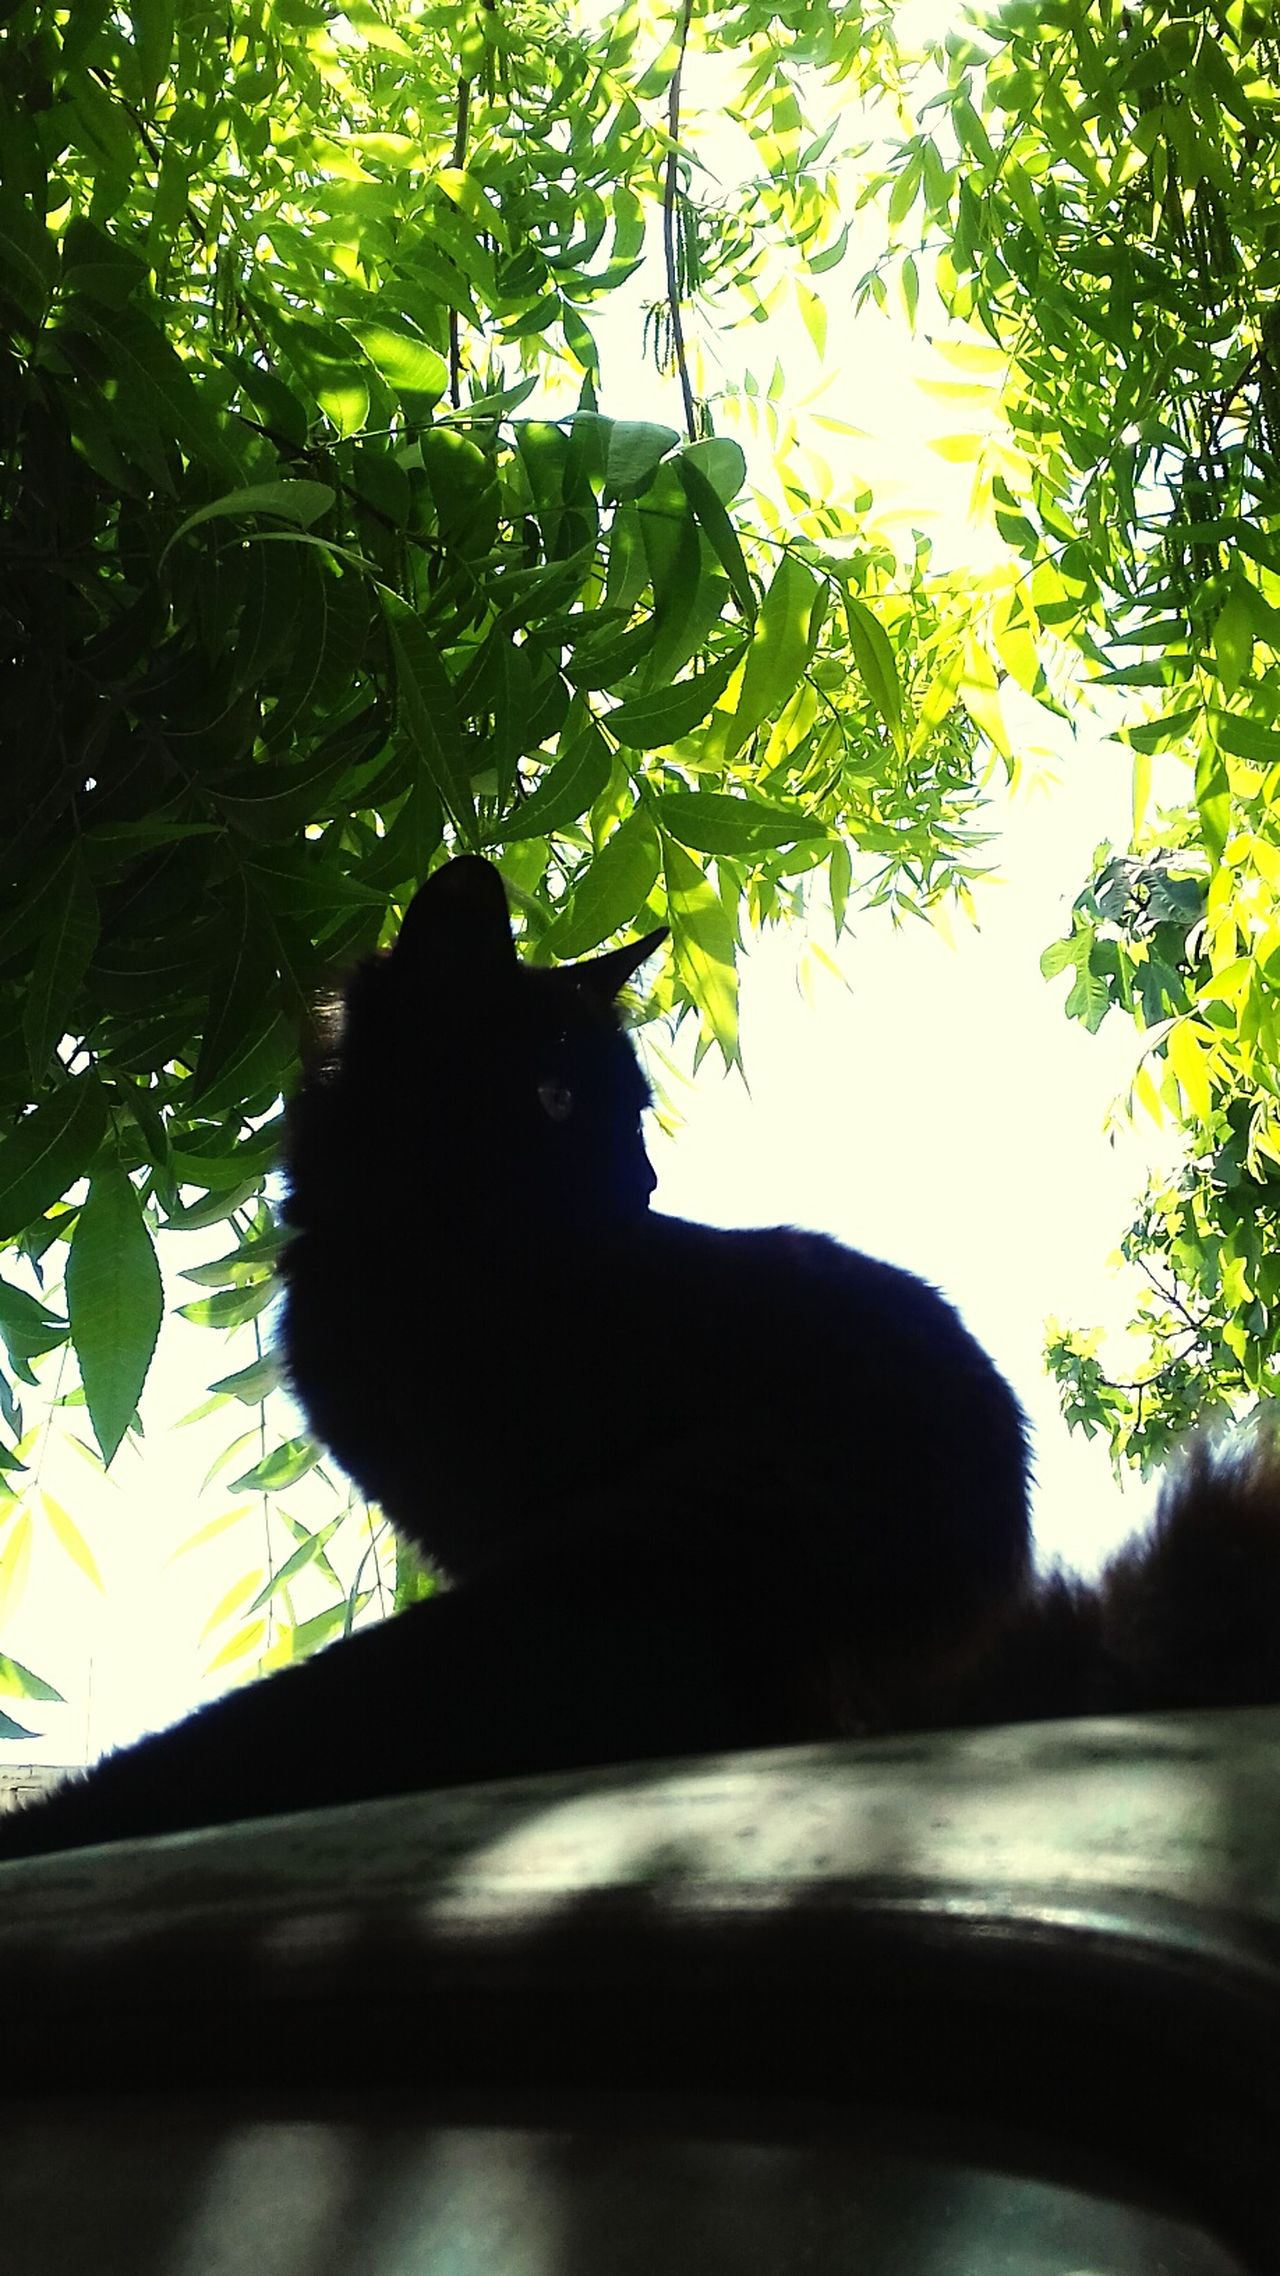 Black Cat Cats Of EyeEm. Black Color One Animal Cat Lovers Domestic Animals Morning Sun Nature Kitten 🐱 Cat♡ Cats 🐱 Black Cats Are Beautiful Shadows & Lights Day Black Cats Beauty In Nature Portrait Of A Cat Green Color Animal Themes Outdoors Garden Domestic Cat No People Kitty Cat Kitty Love